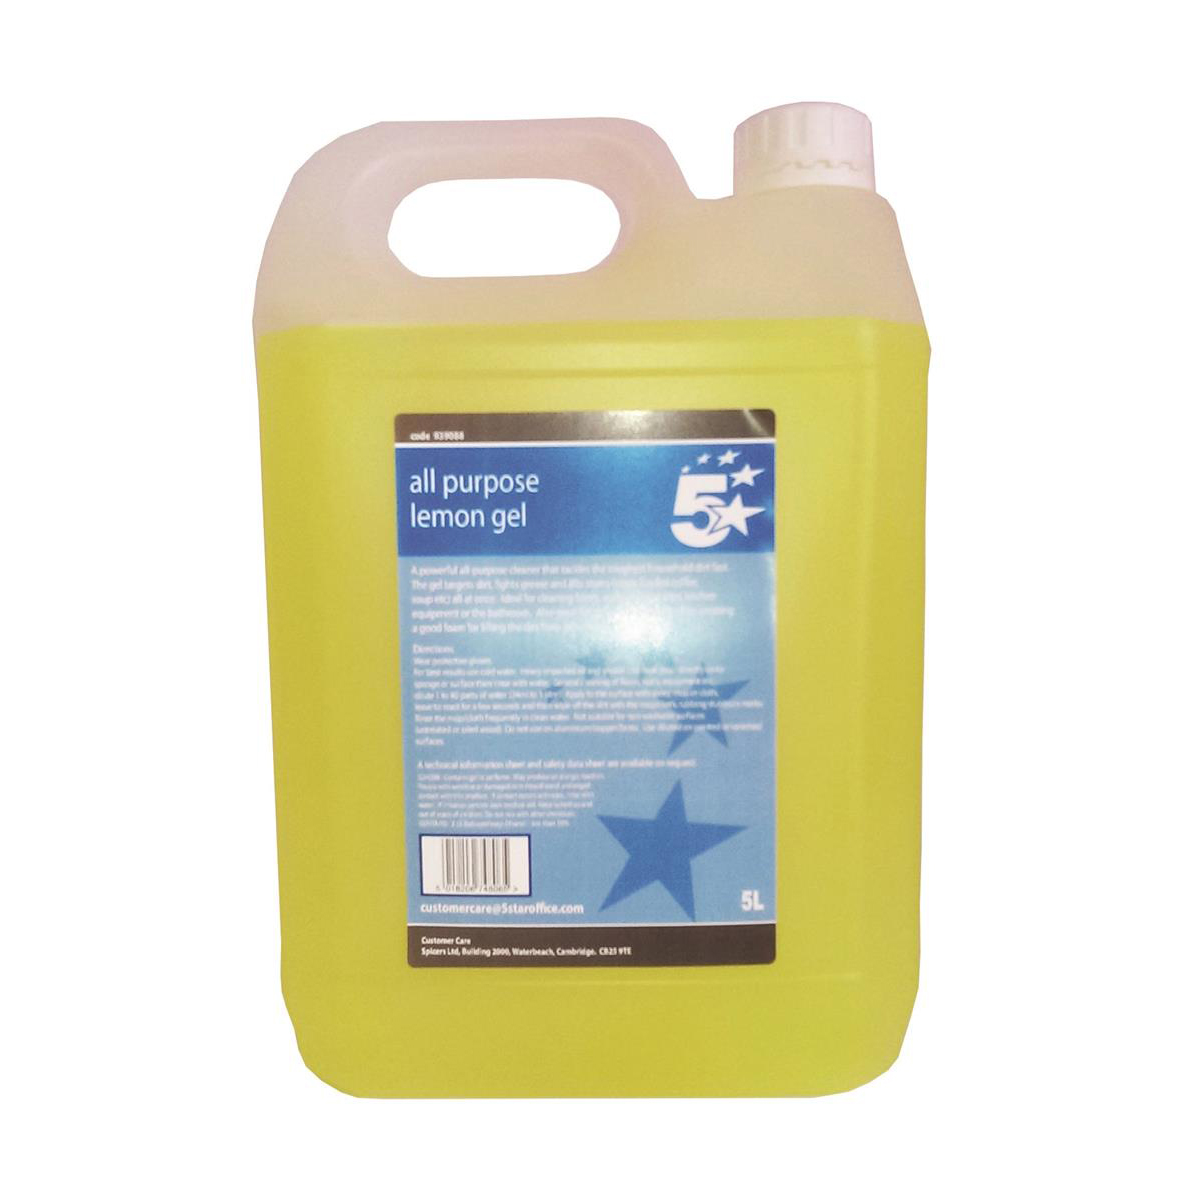 Image for 5 Star Facilities All Purpose Lemon Cleaning Gel 5 Litre